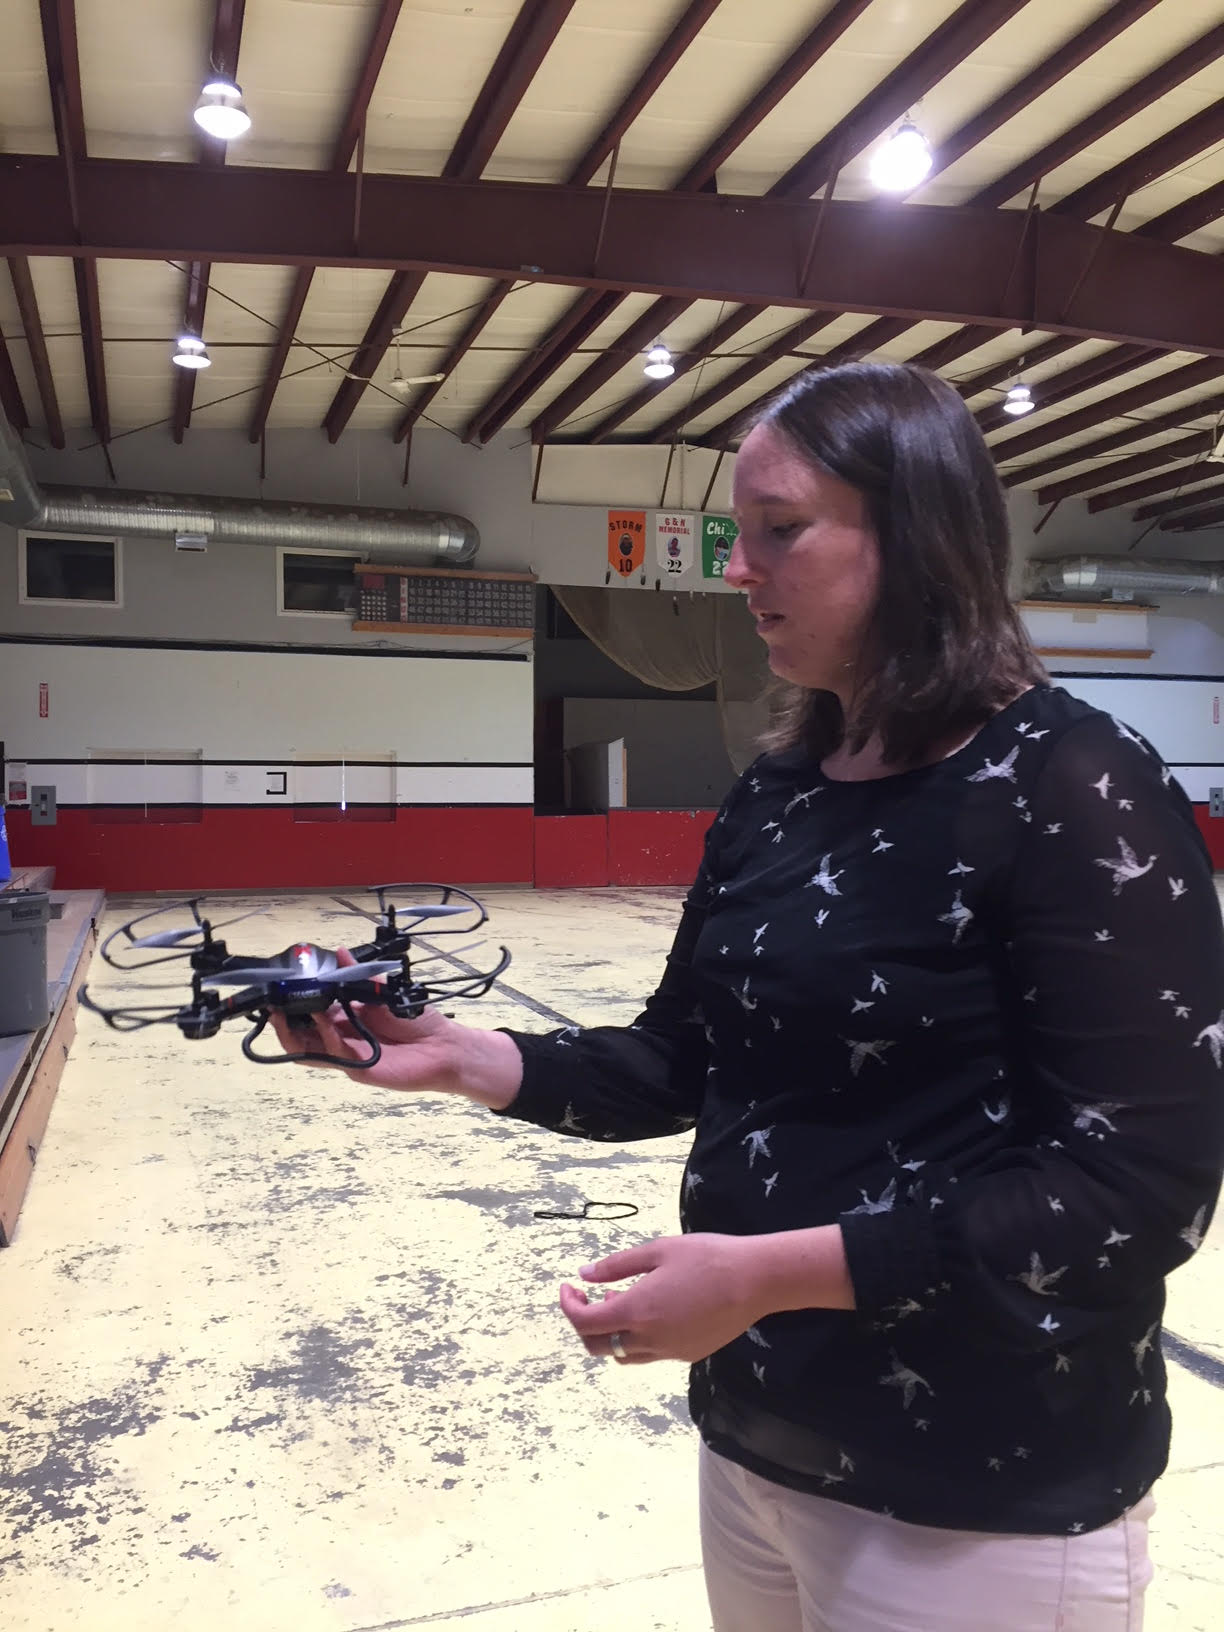 Erin teaches how to turn on and steer the drone